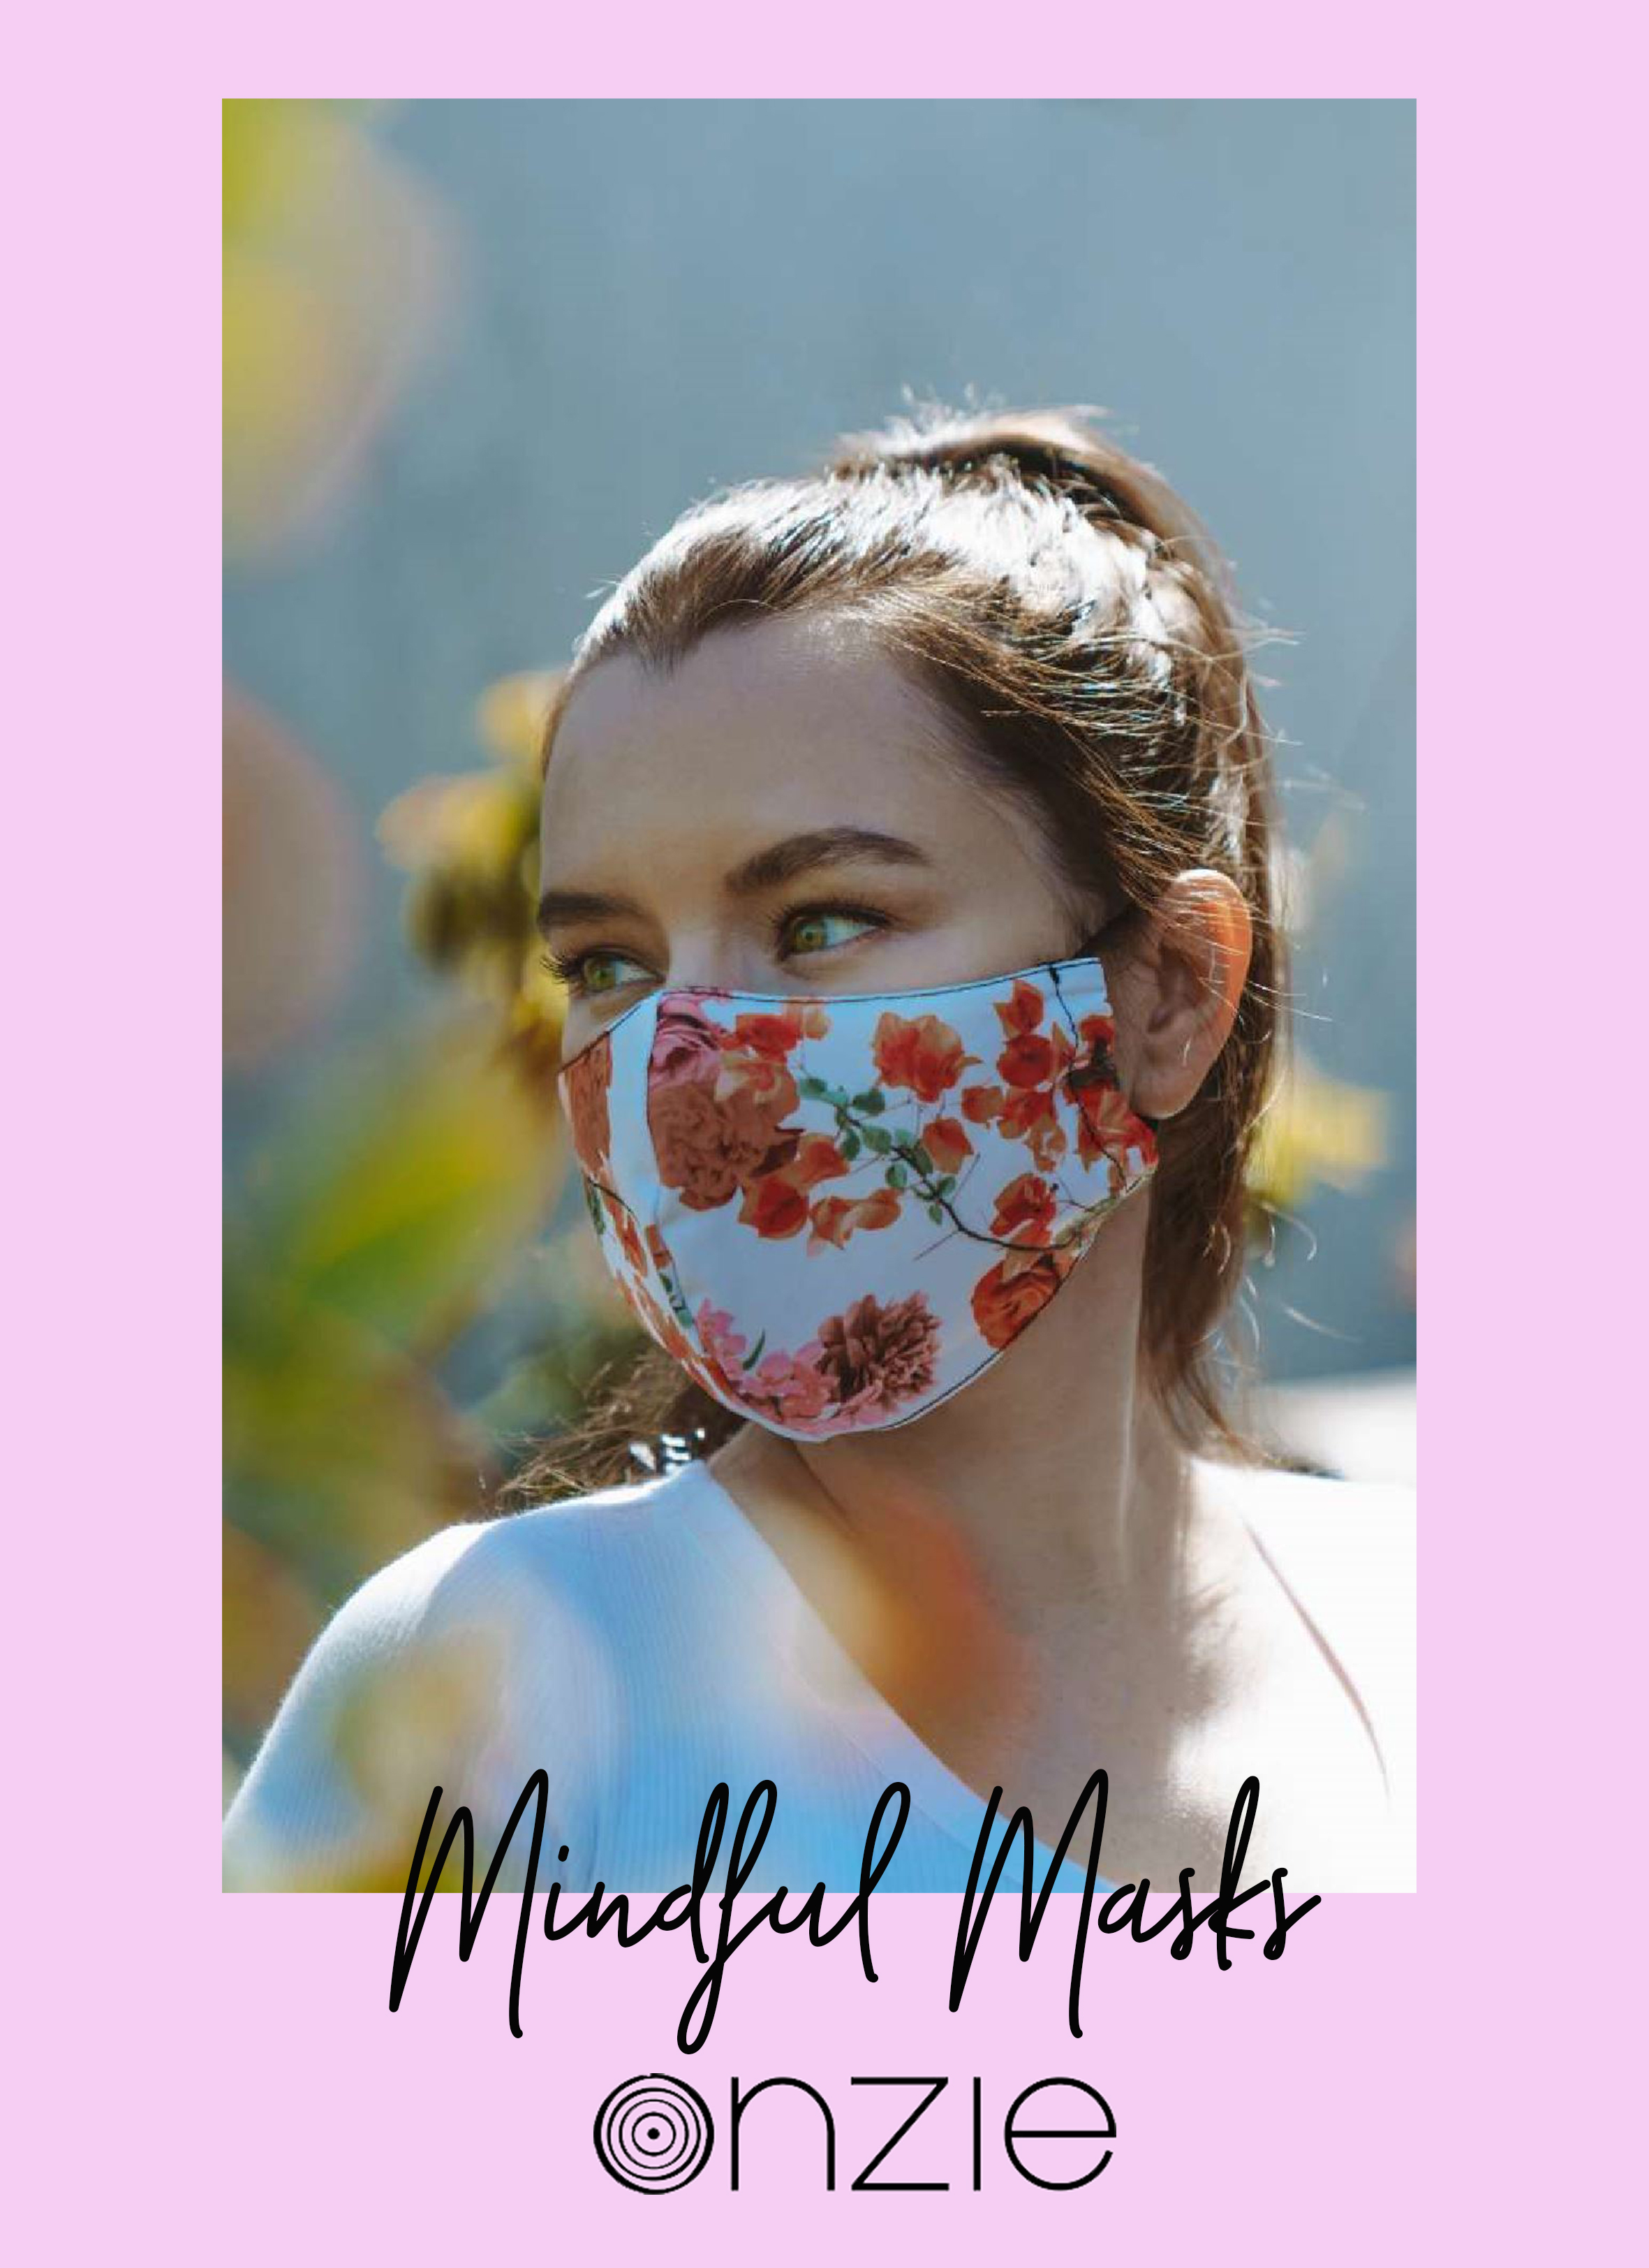 Mindful_Masks_Onzie